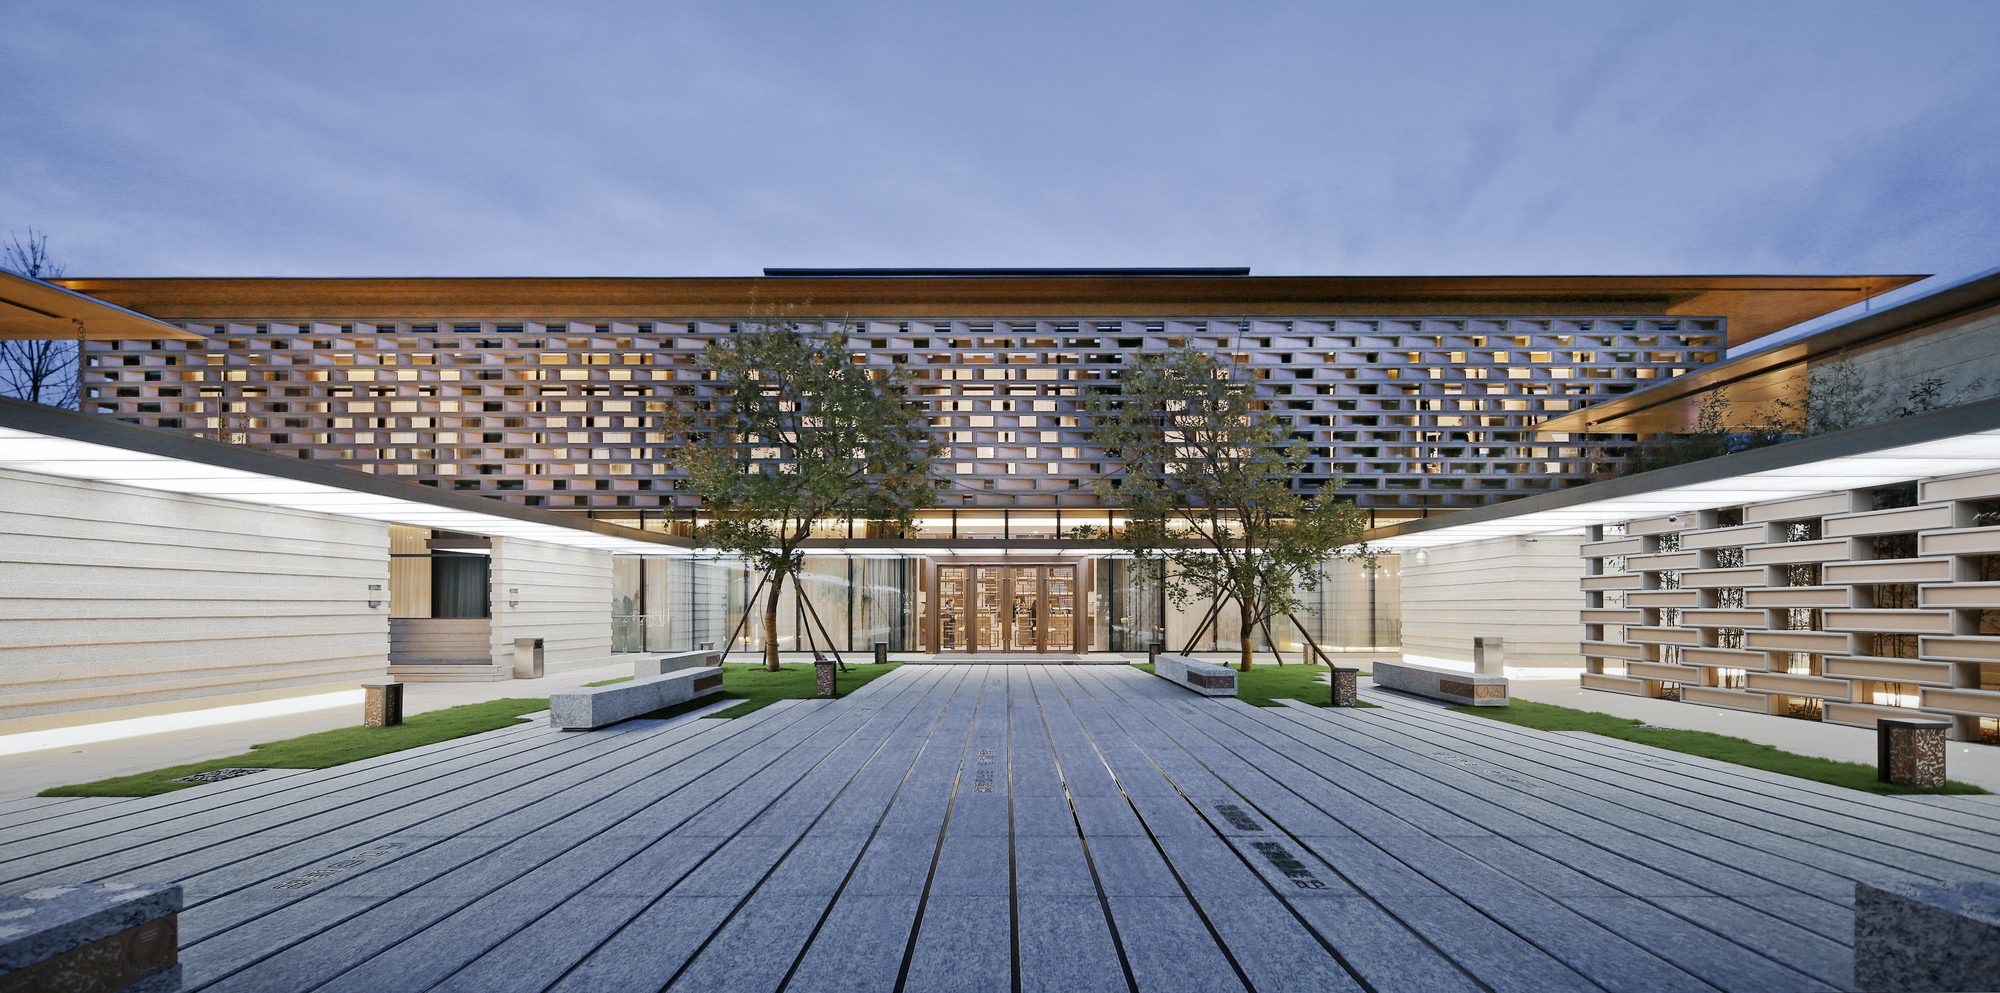 Tianjin Luneng Taishan College Lacime Architectural